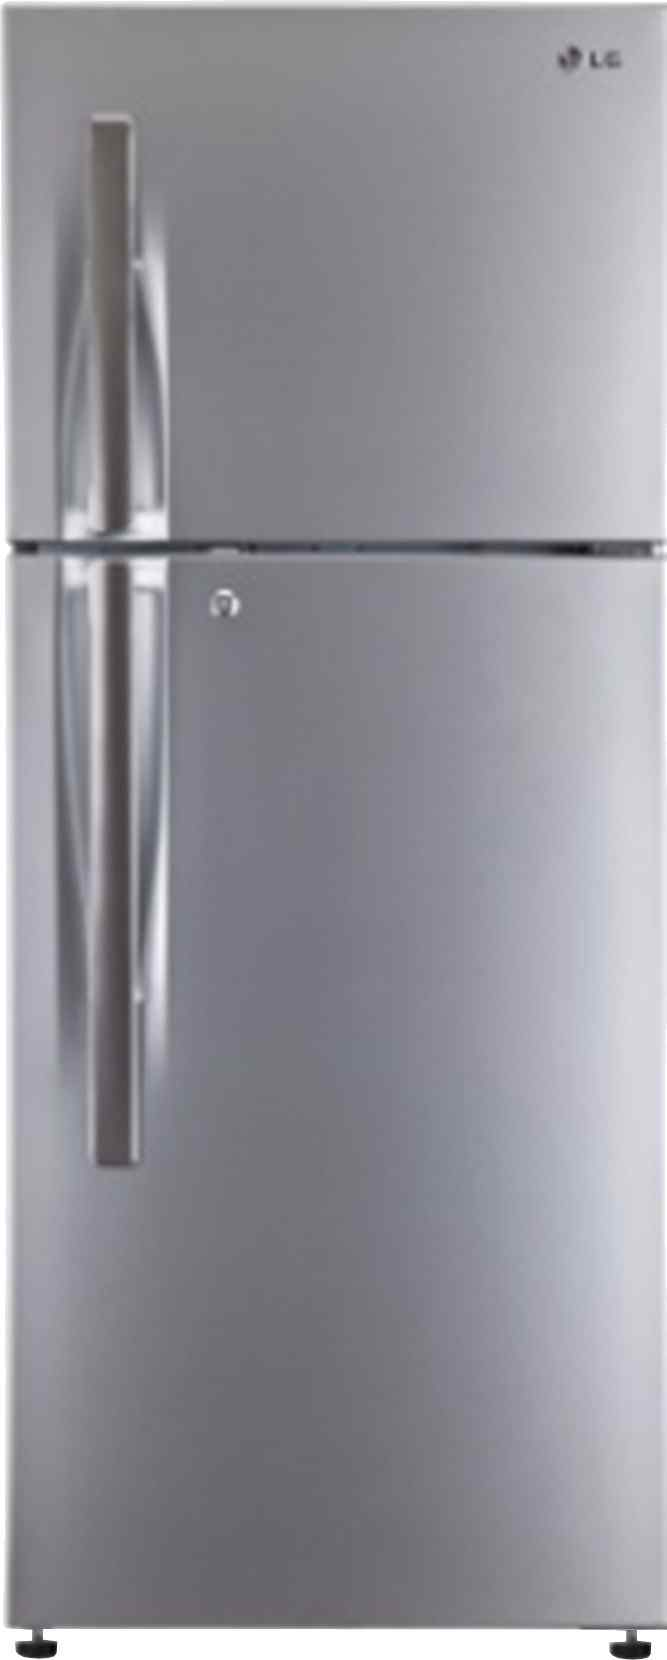 Best price on LG GL-T402HPZM 360 Litre Double Door Refrigerator in India